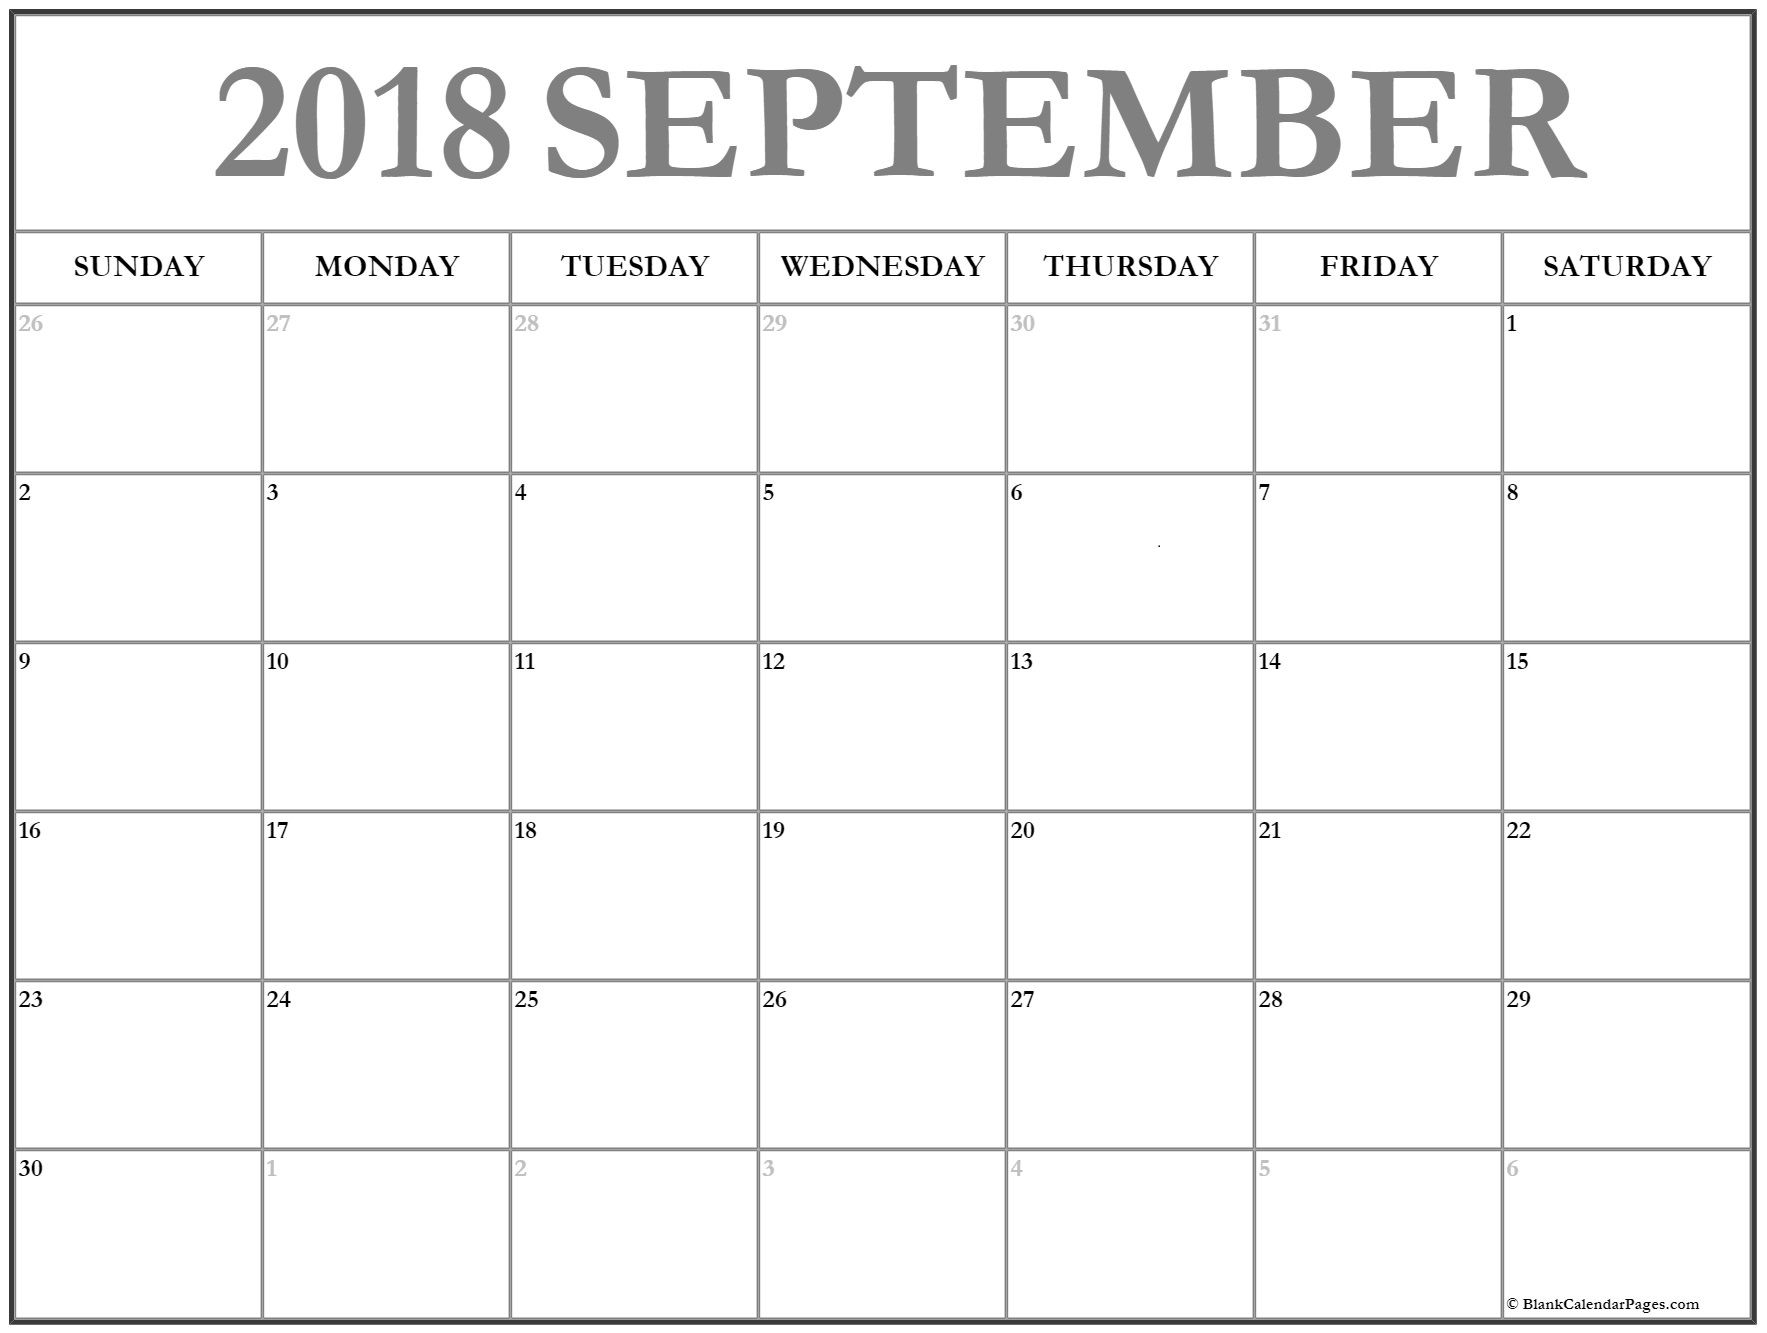 calendar 2018 september september calendar 2018 printable and free blank calendar